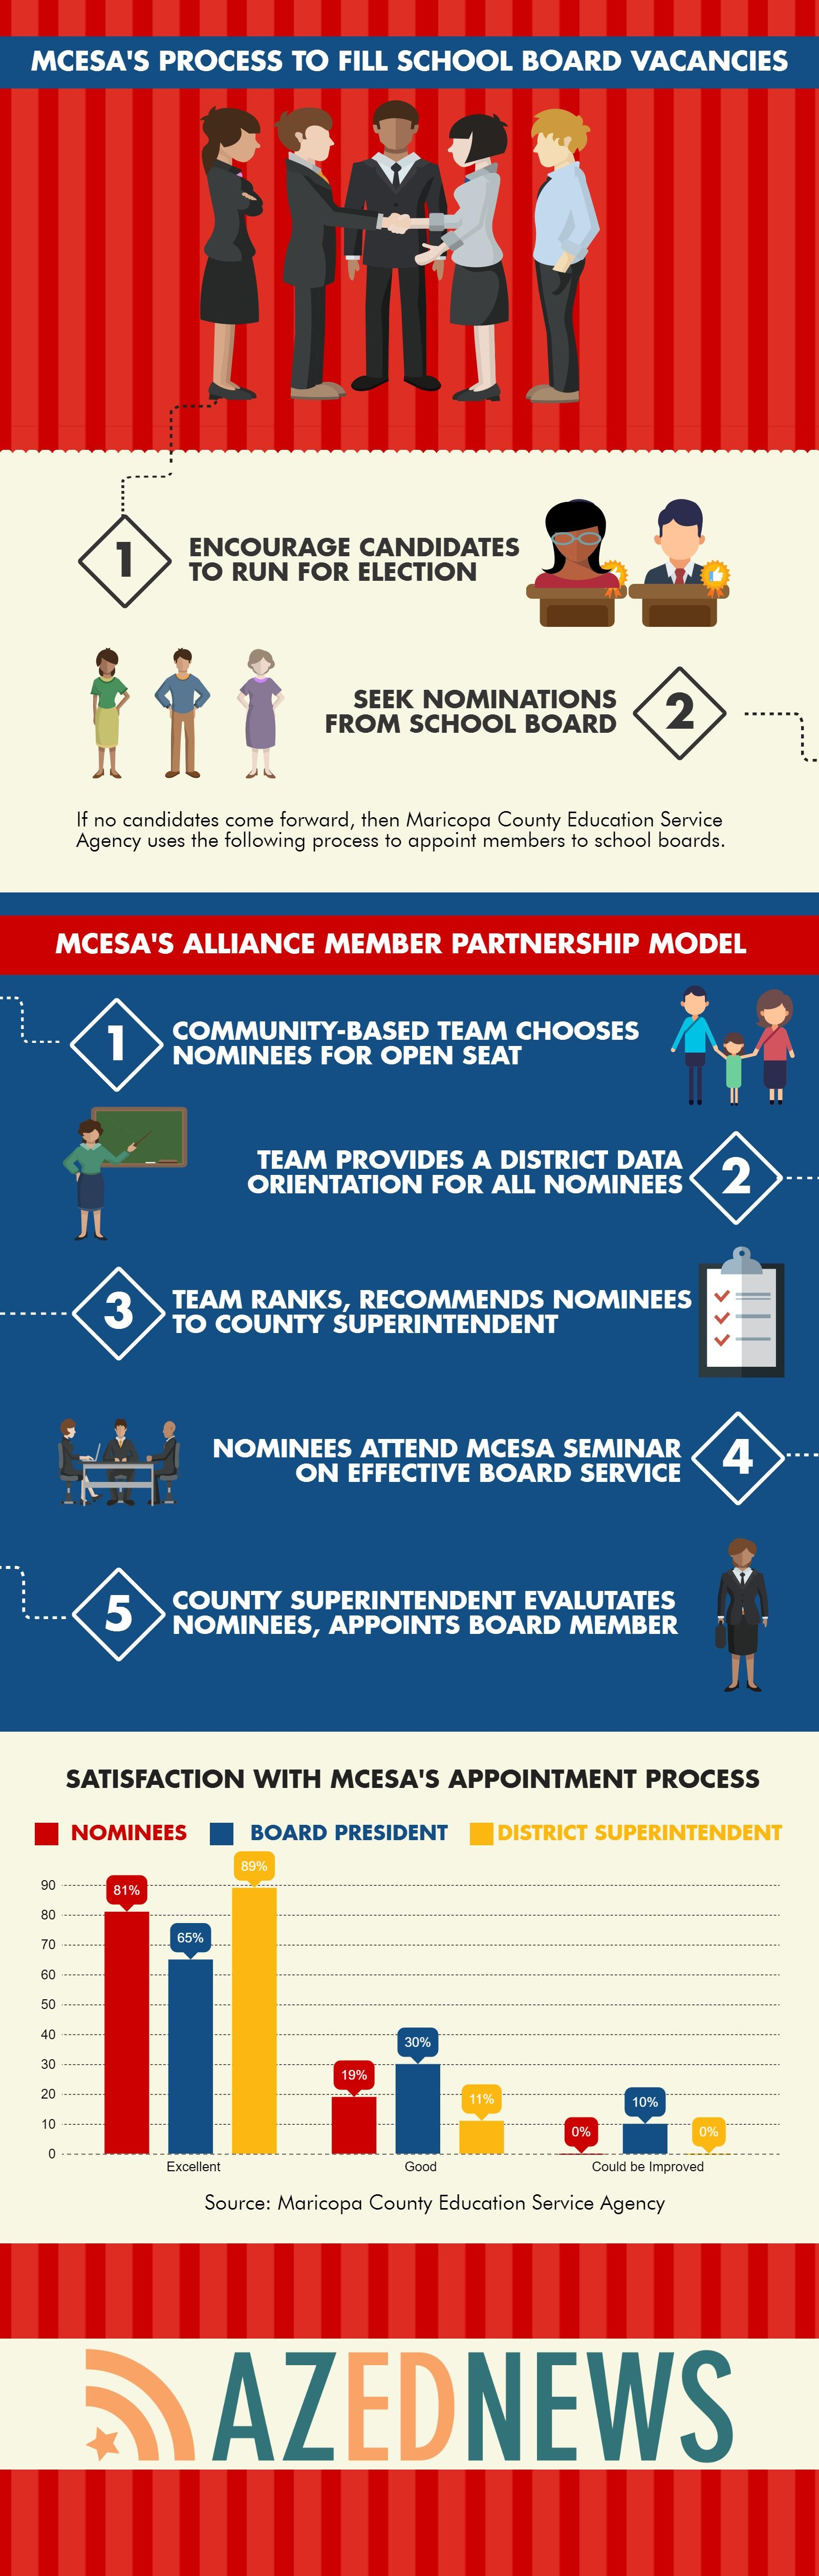 MCESA's process to fill school board vacancies MCESAschoolboardvacancyprocessInfographic